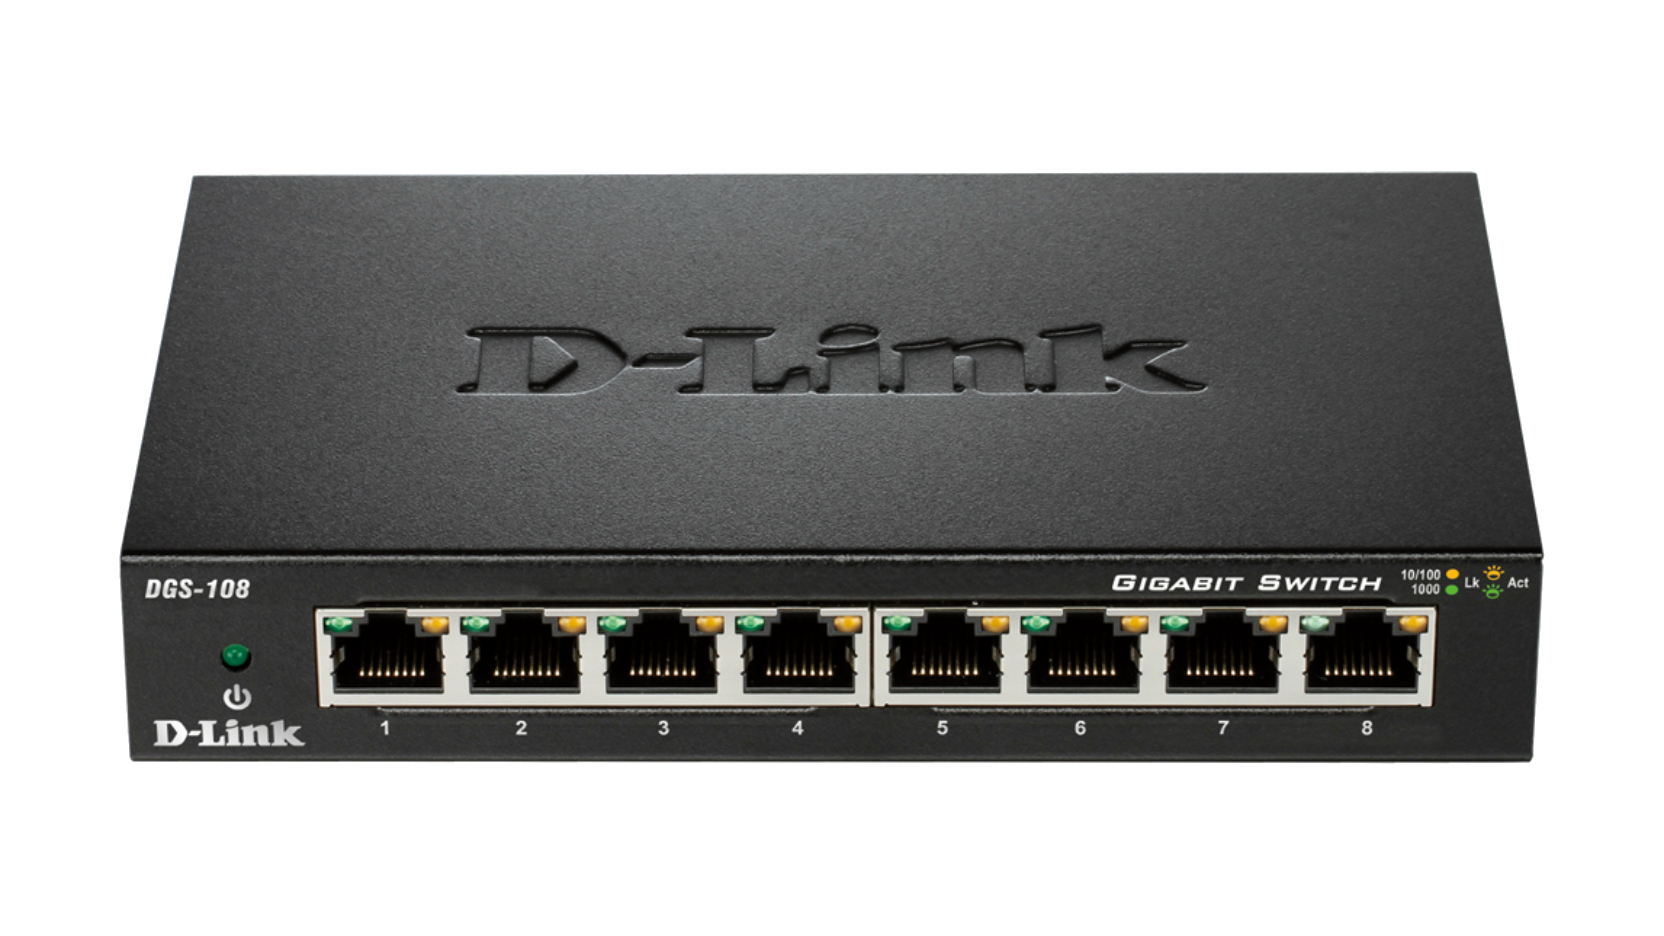 dgs 108 8 port gigabit unmanaged desktop switch d link uk rh eu dlink com